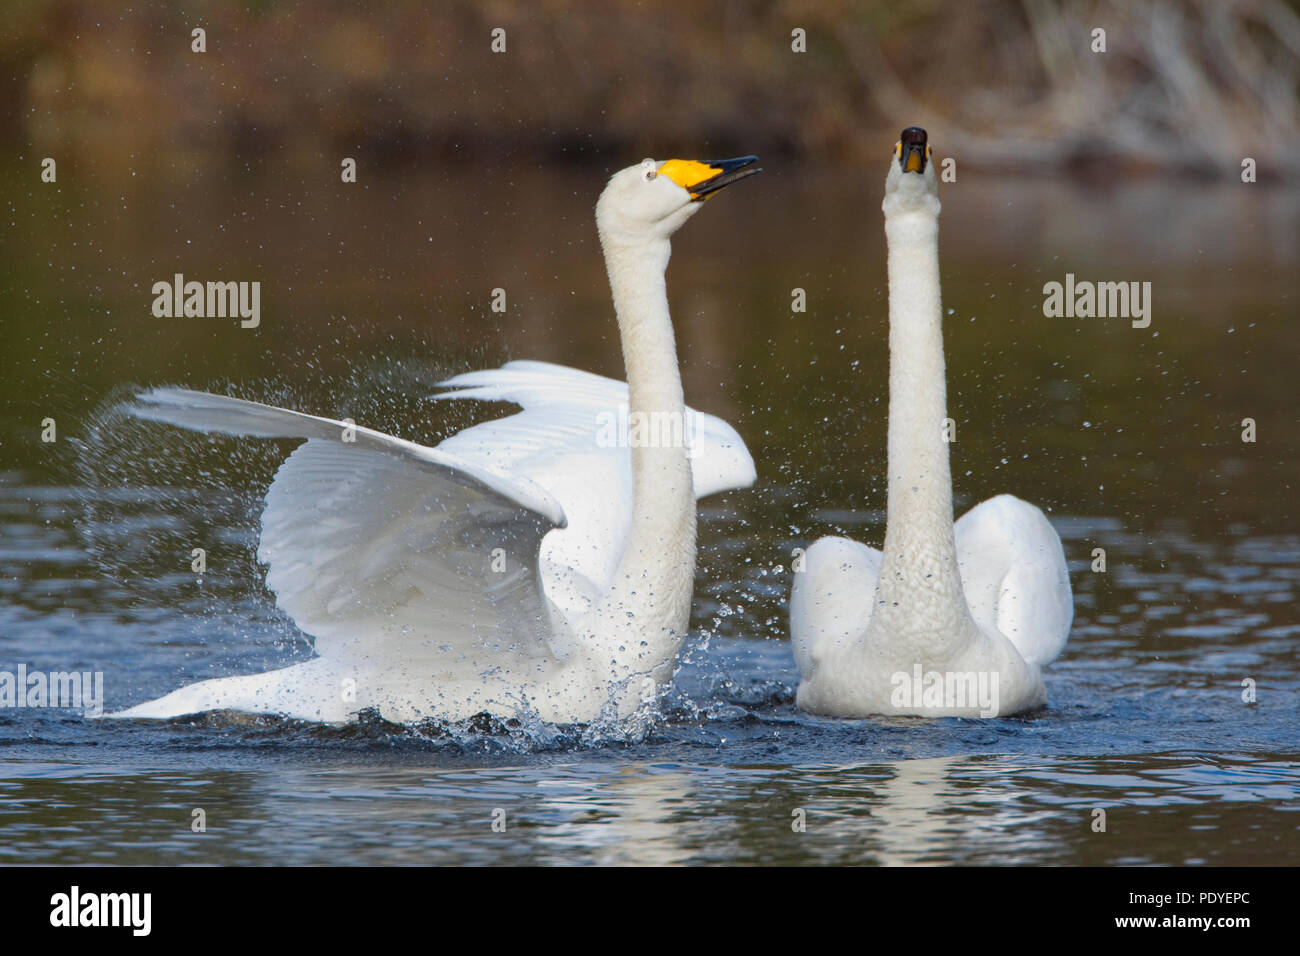 Koppel wilde zwanen met paringsritueel.A pair of Whooper Swans with courtship display. Stock Photo